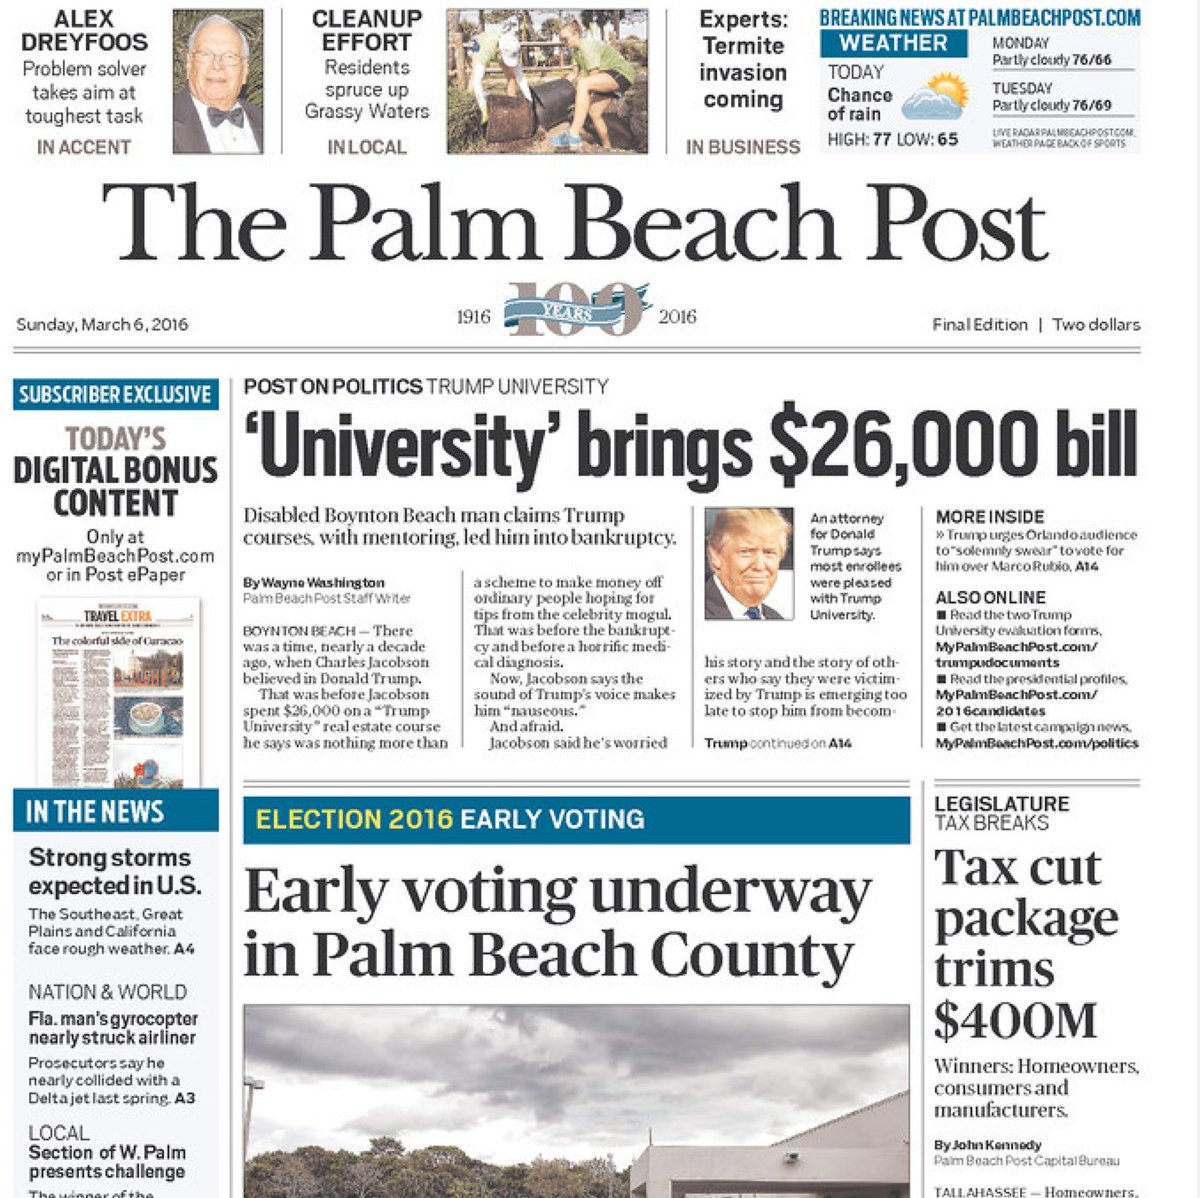 Trump University on the front page in FL... https://t.co/FZPirCCn5i